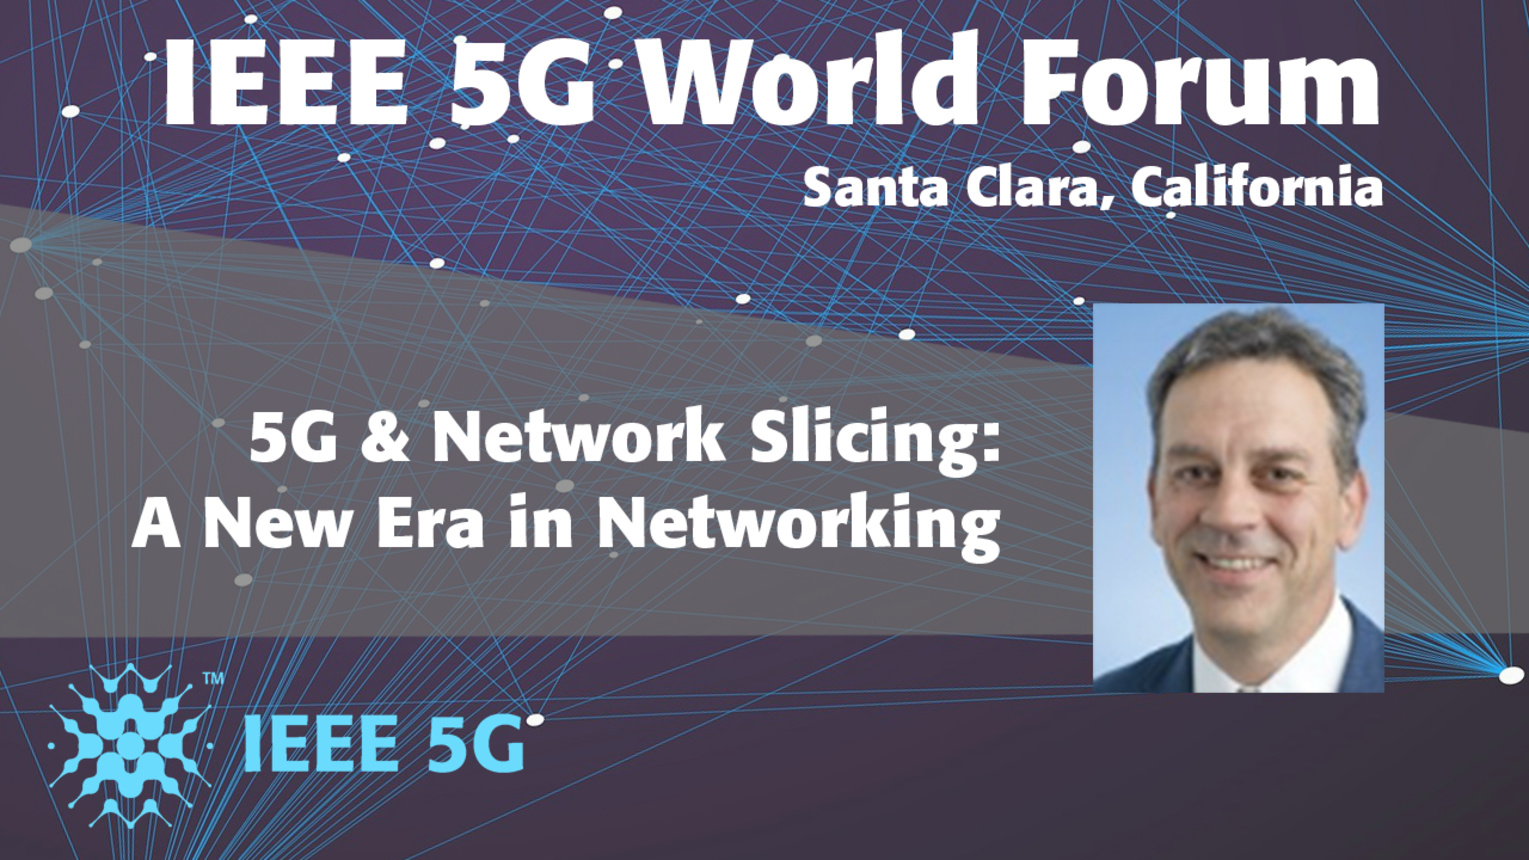 5G & Network Slicing: A New Era in Networking - Constantine Polychronopoulos - 5G World Forum Santa Clara 2018